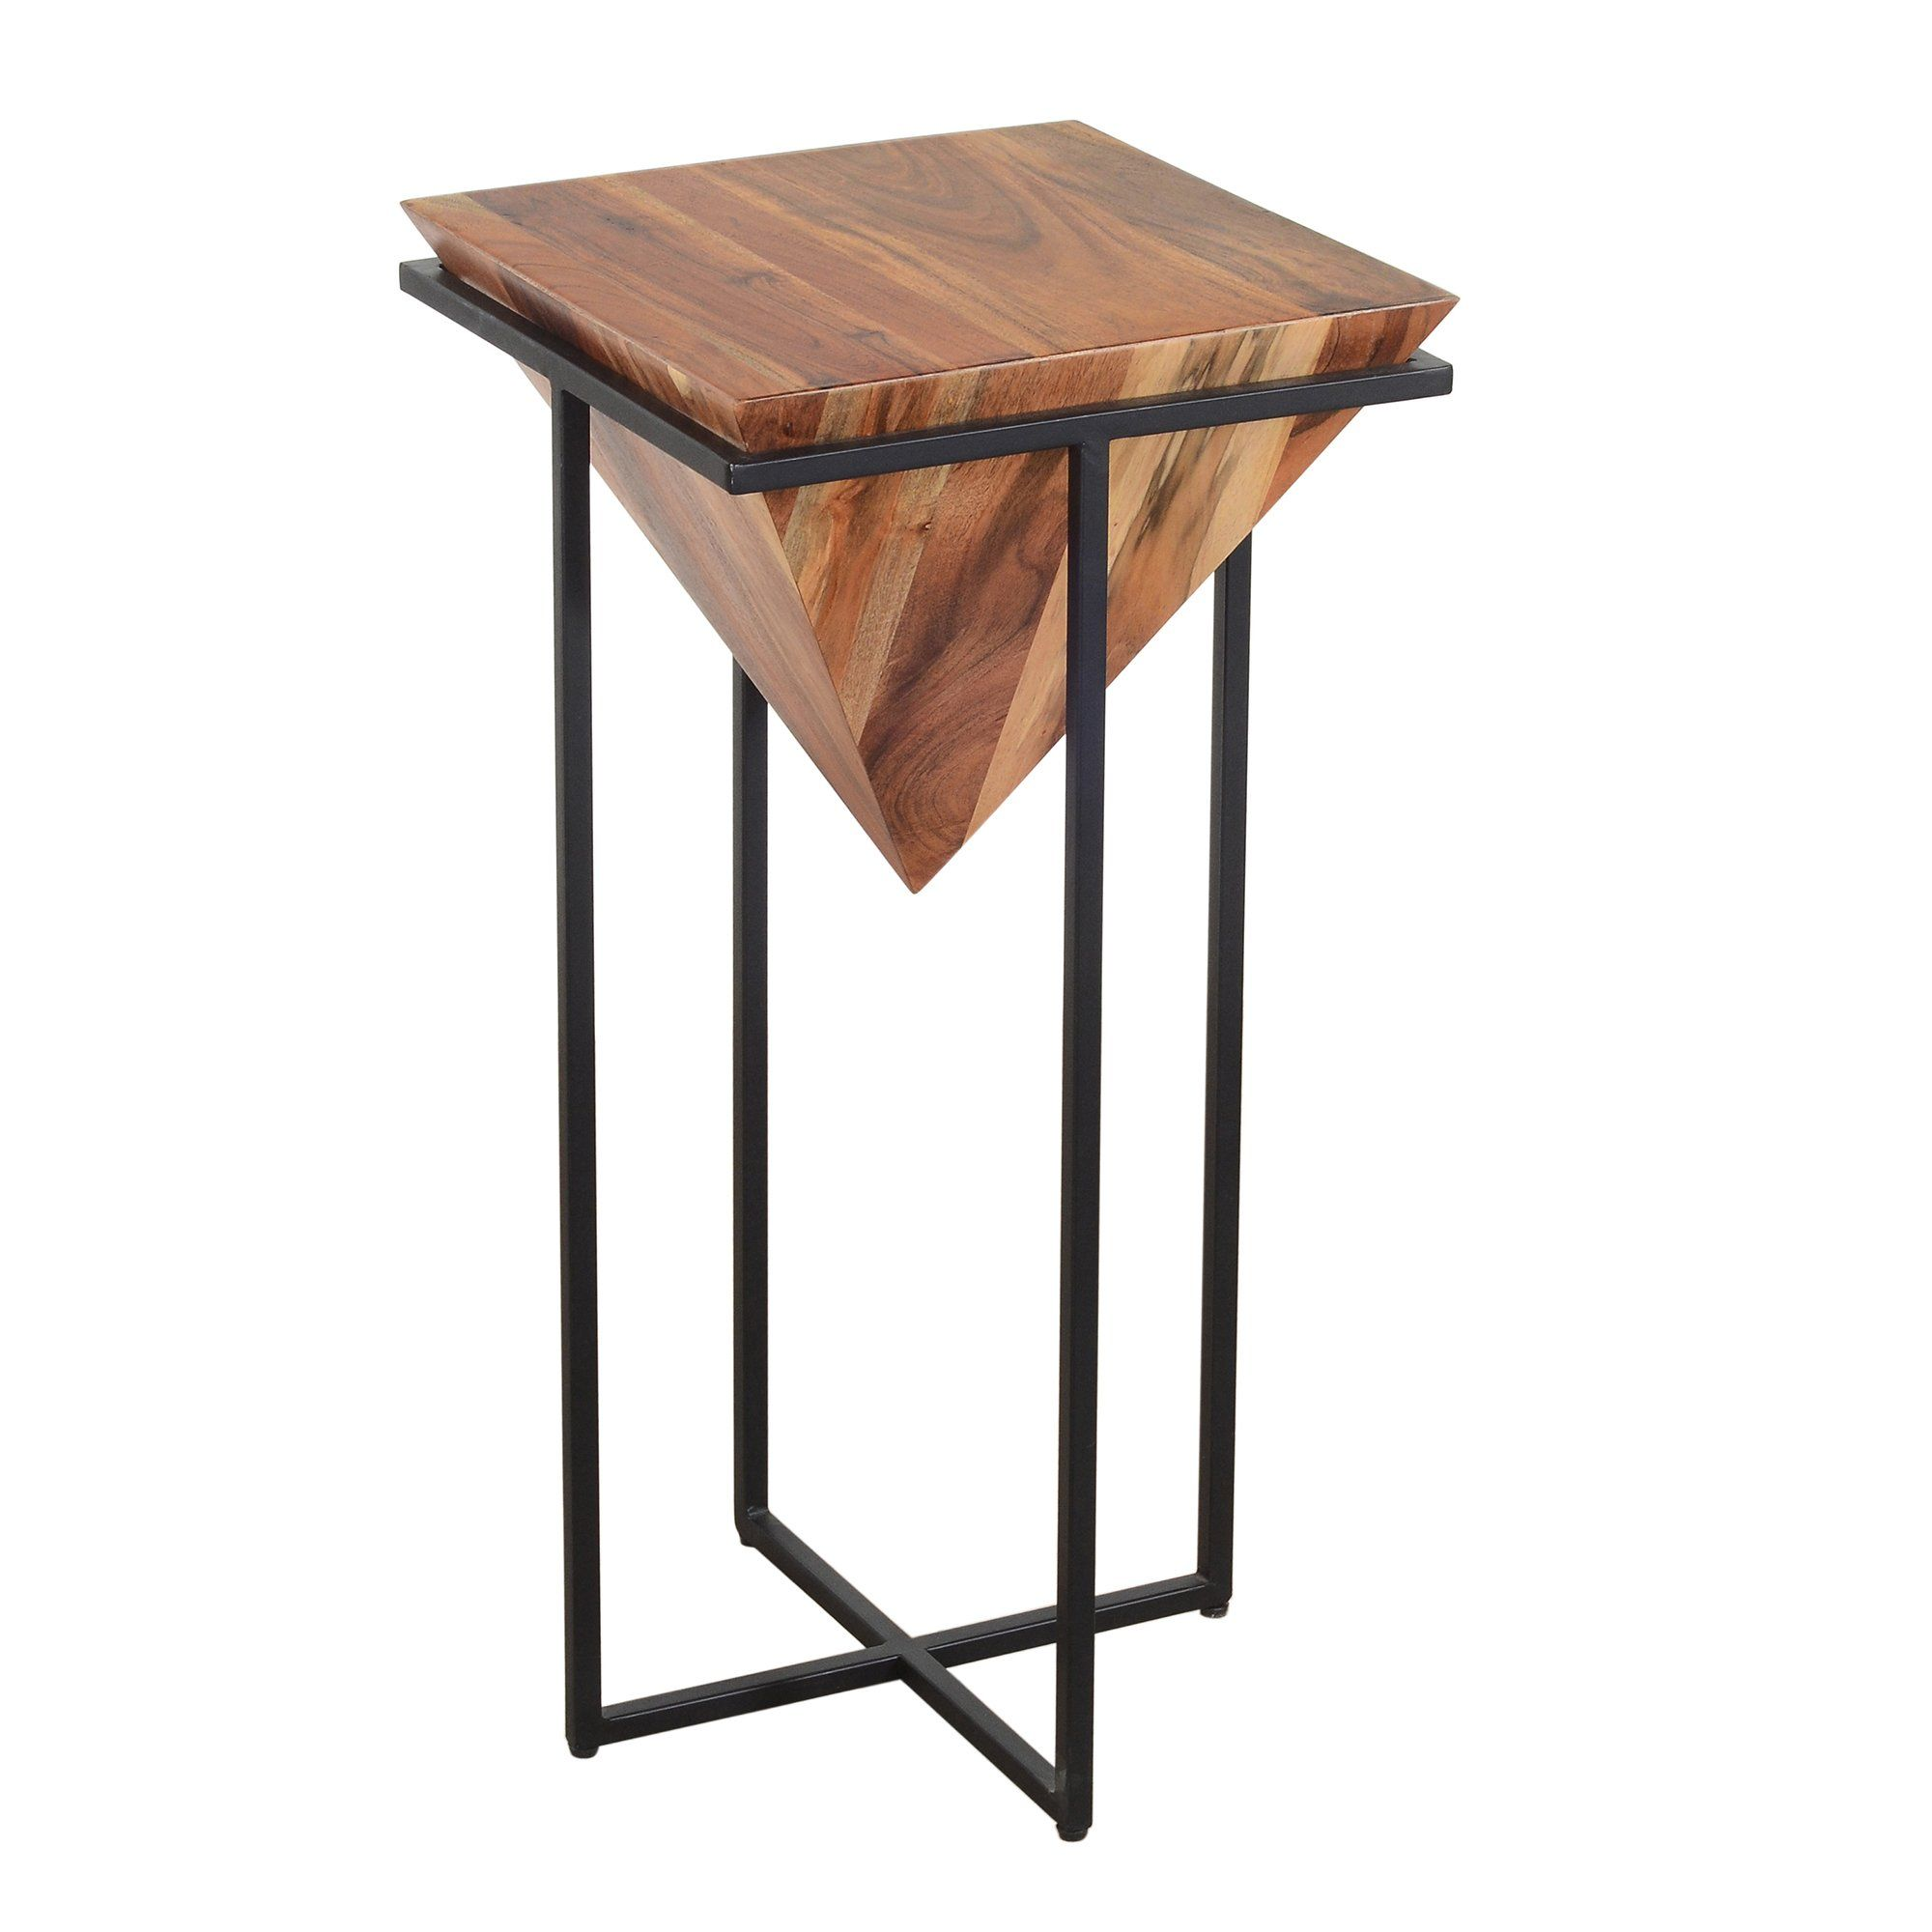 30 Inch Pyramid Shape Wooden Side Table With Cross Metal Base Brown And Black In 2020 Wooden Side Table Side Table Wooden